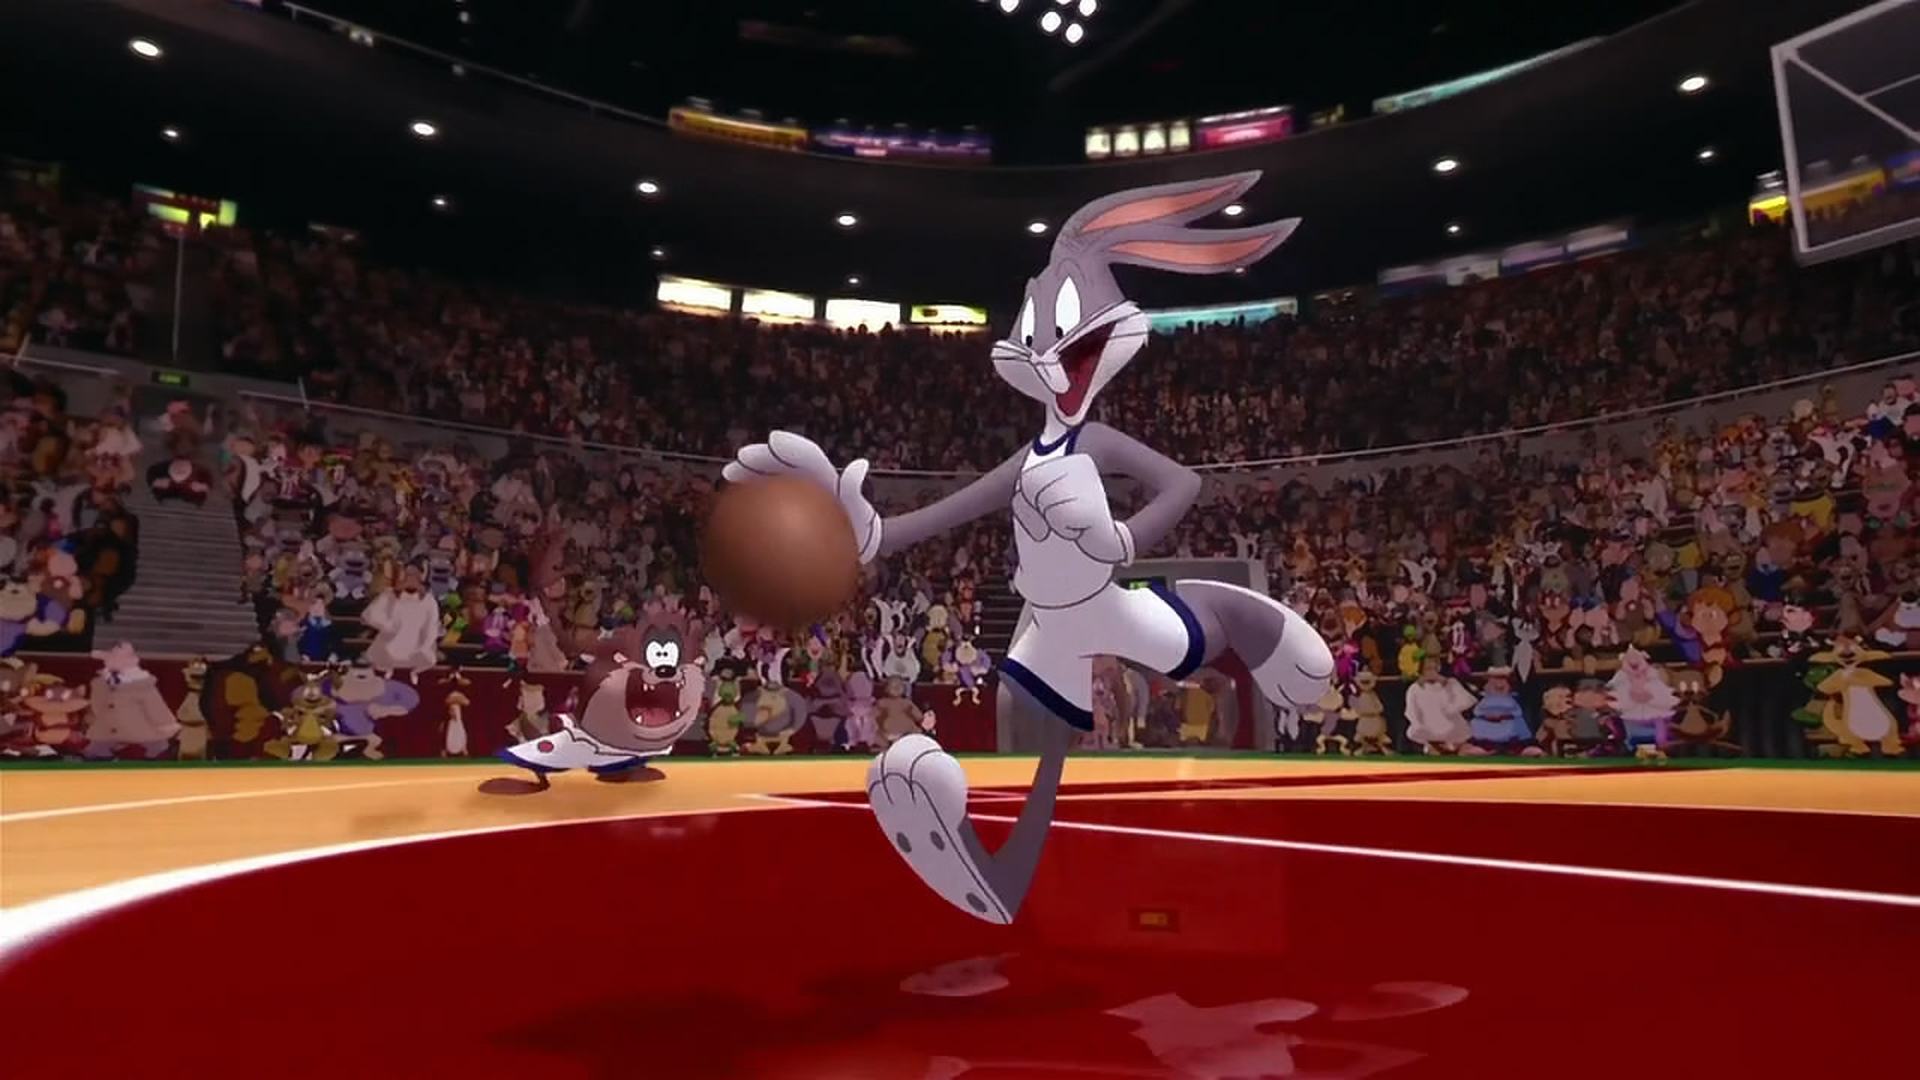 Looney Tunes Sequel To Space Jam In The Works With Lebron James